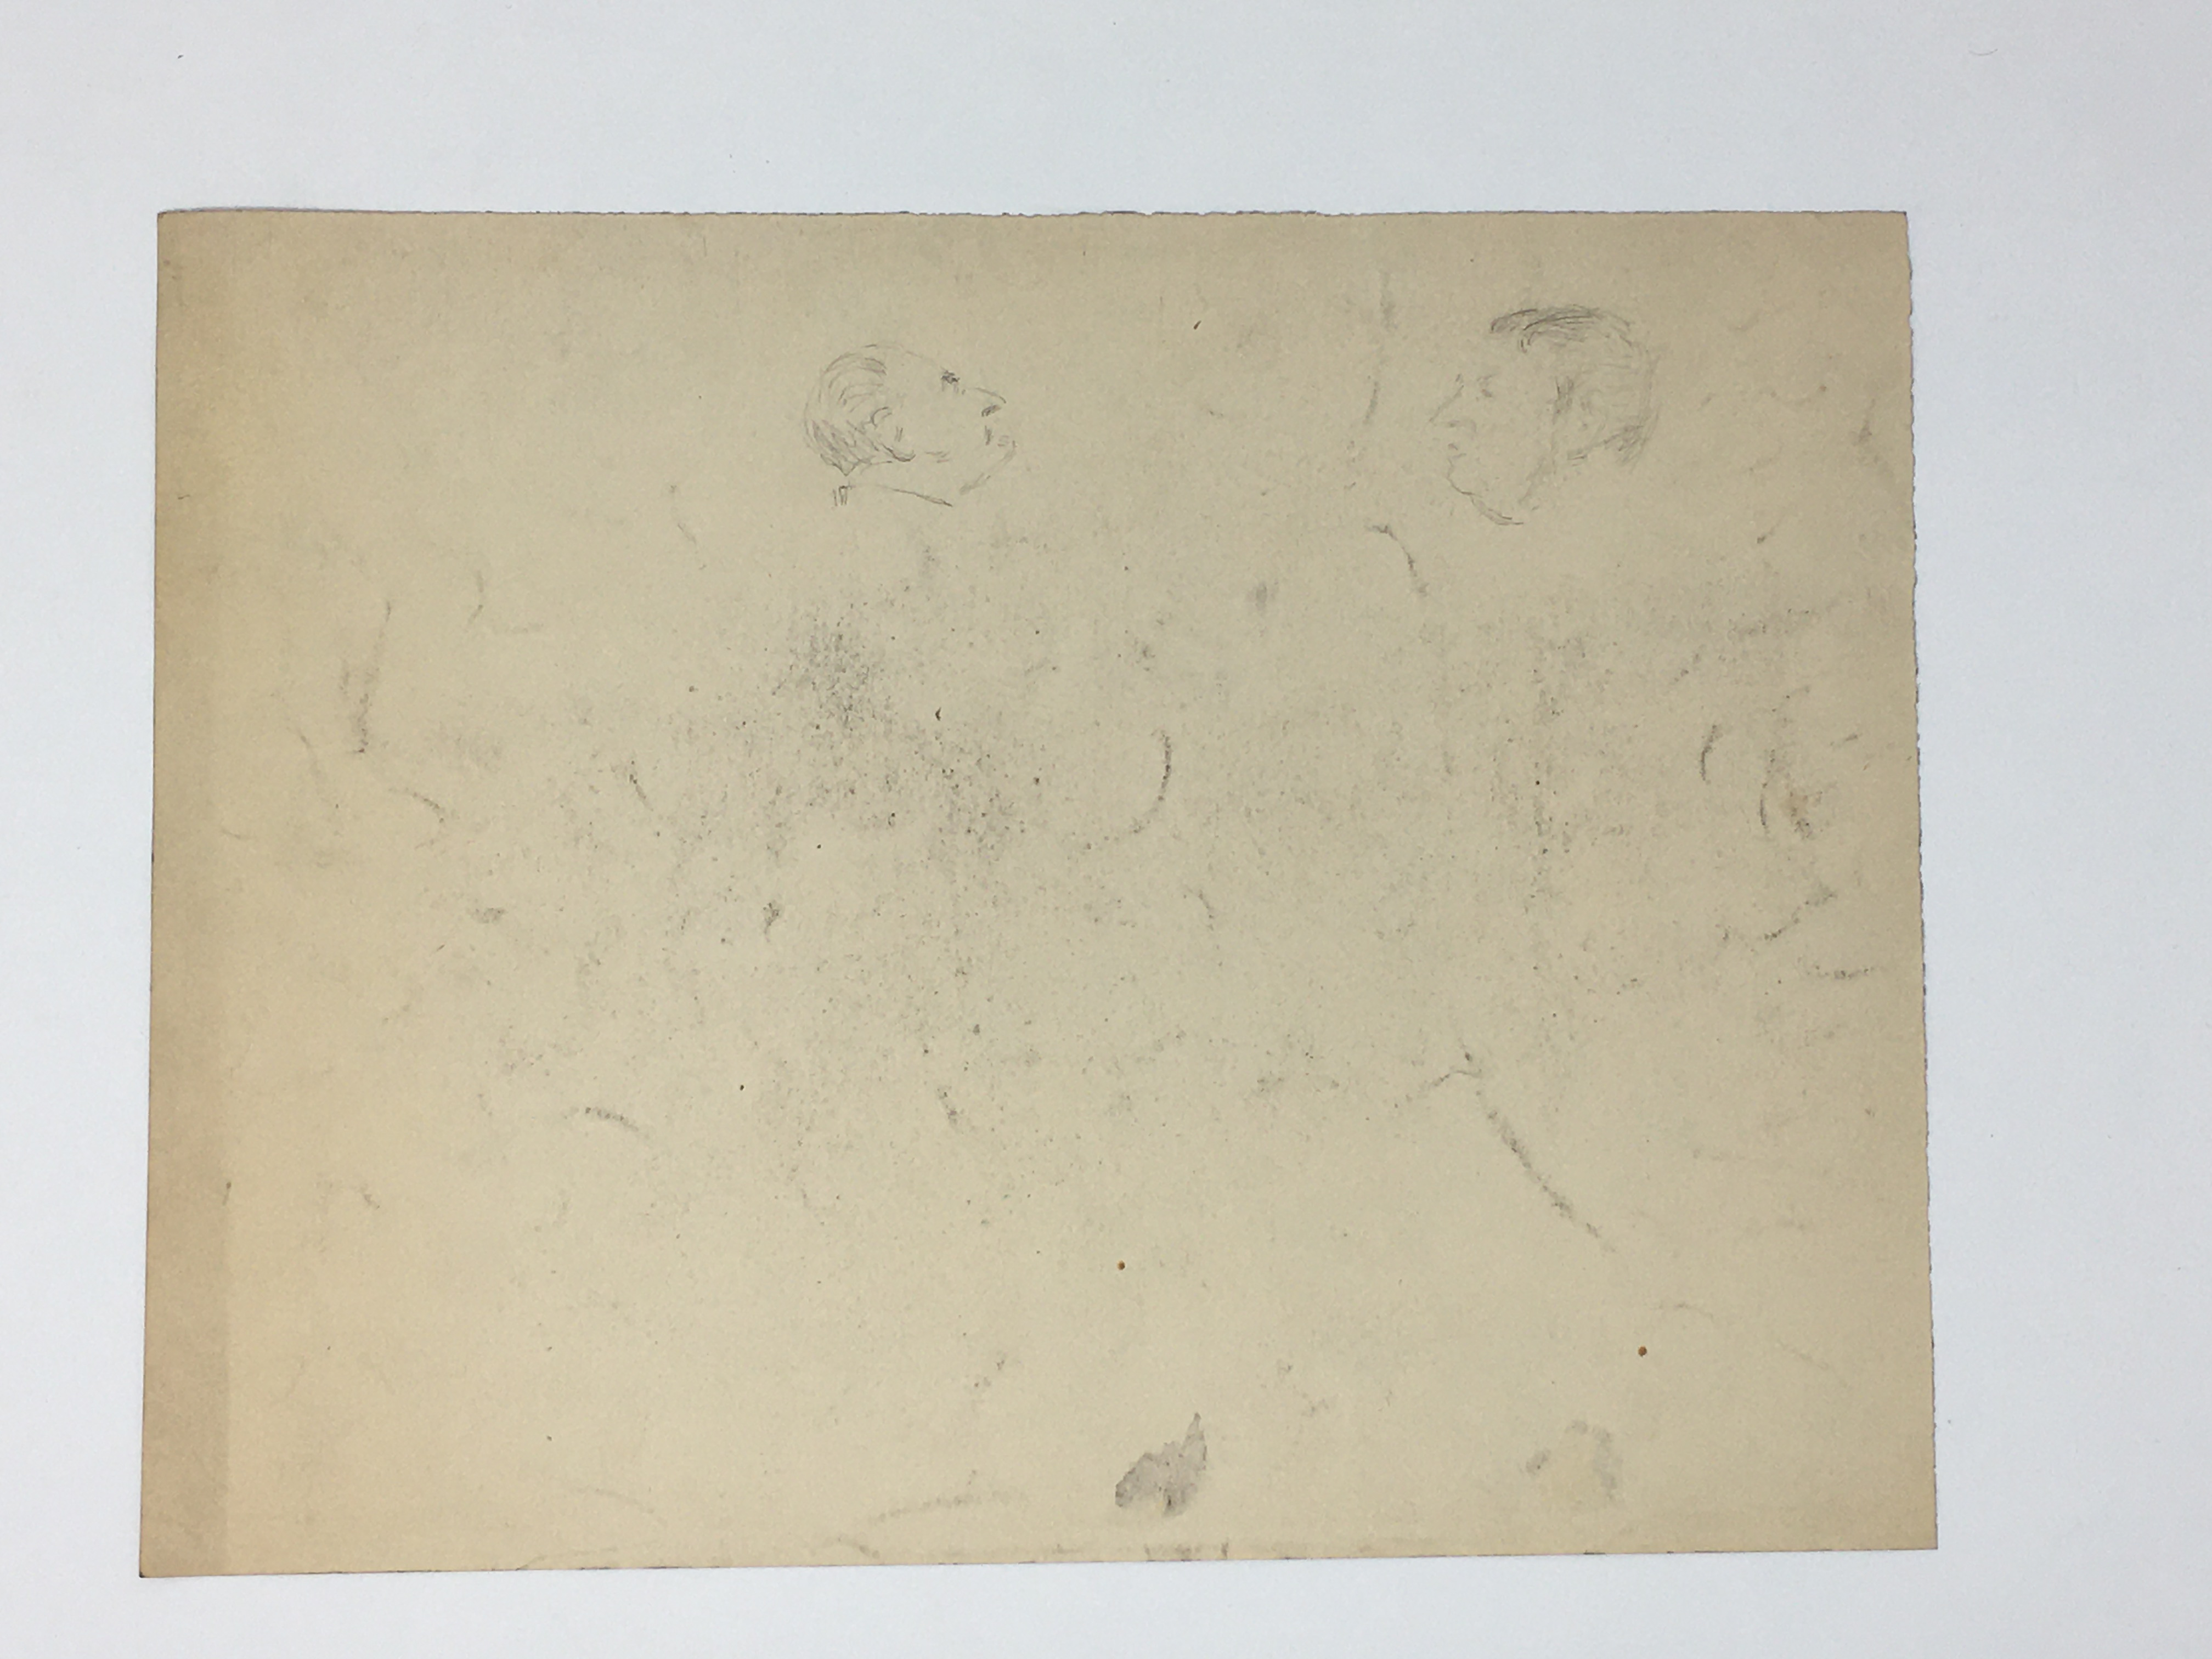 J'Accuse Newspaper, Emile Zola Quote, Signed Dreyfus Portrait, Rare Trial Drawings & Schwartzkoppen - Image 28 of 74